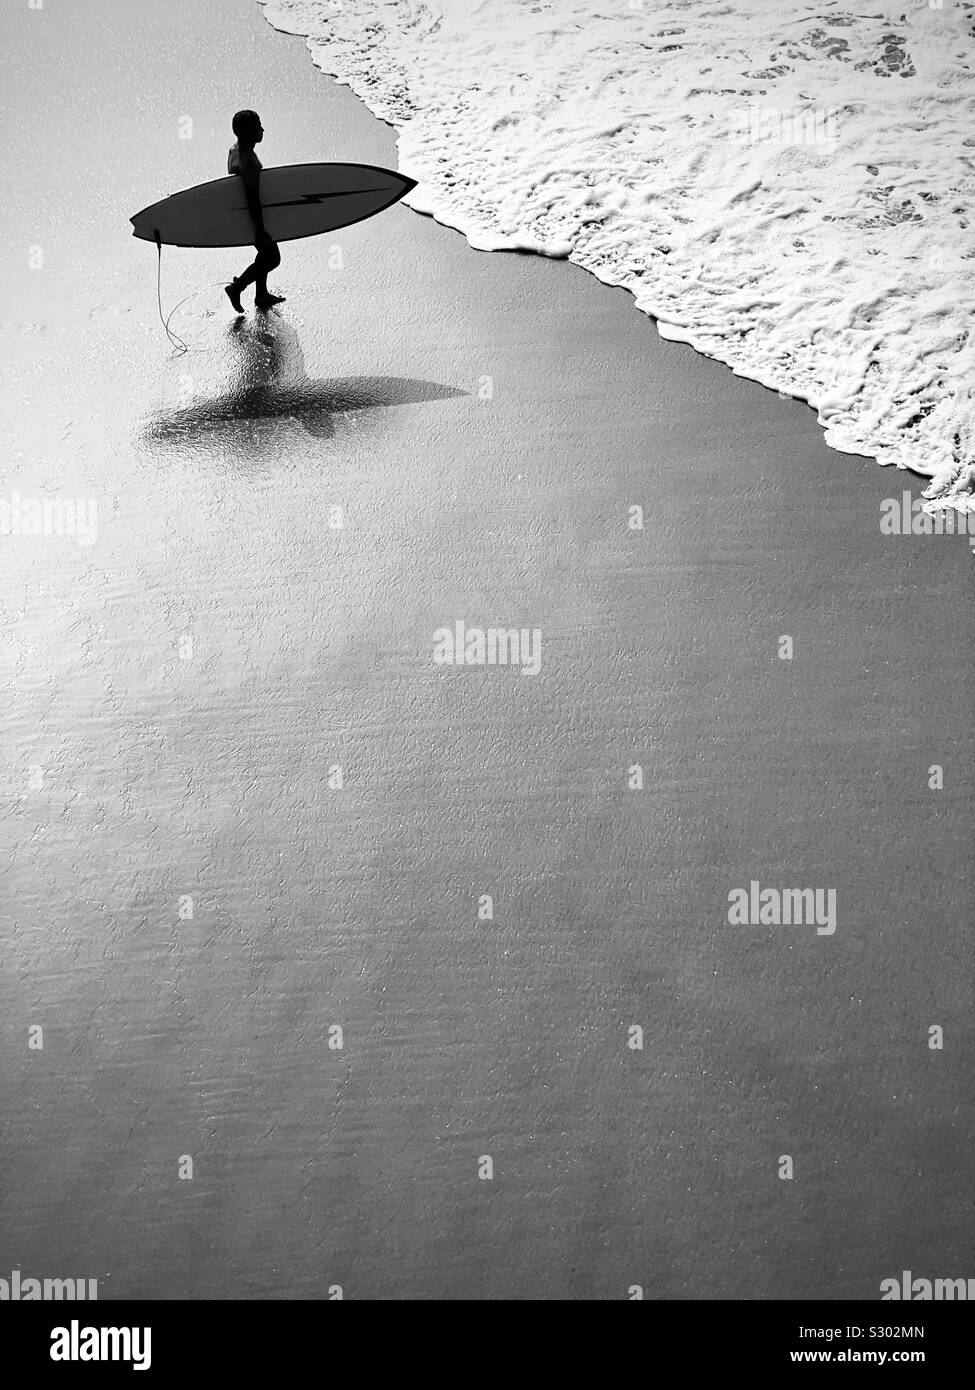 Surfista maschio entra nel surf. Manhattan Beach, California, Stati Uniti d'America. Foto Stock